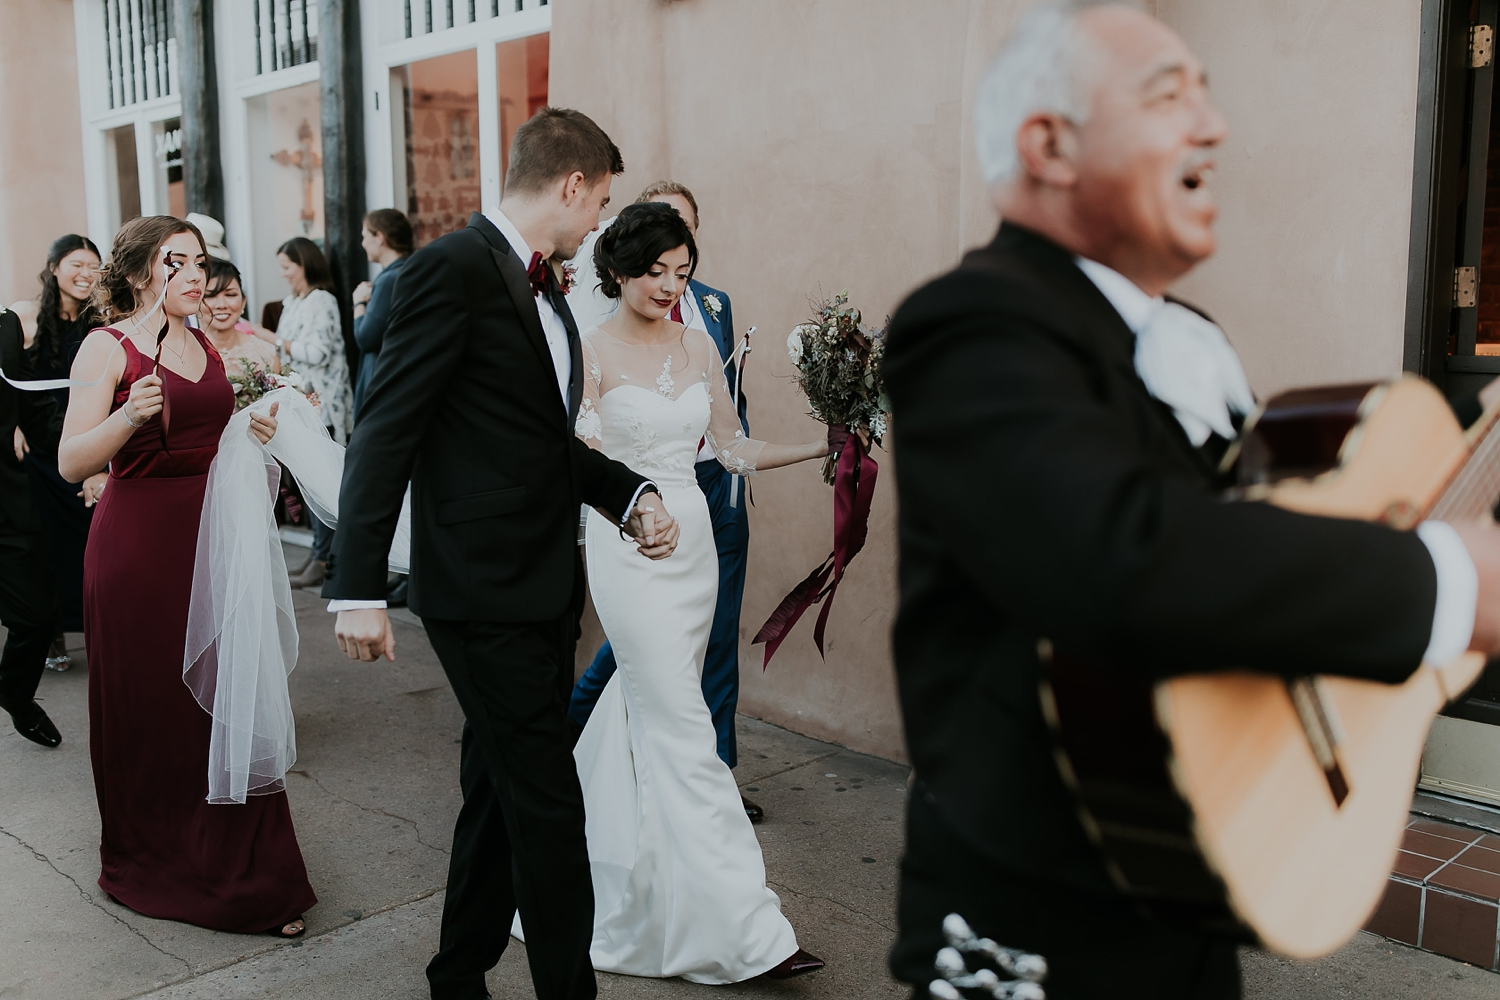 Alicia+lucia+photography+-+albuquerque+wedding+photographer+-+santa+fe+wedding+photography+-+new+mexico+wedding+photographer+-+la+fonda+santa+fe+wedding+-+santa+fe+fall+wedding+-+la+fonda+fall+wedding_0079.jpg